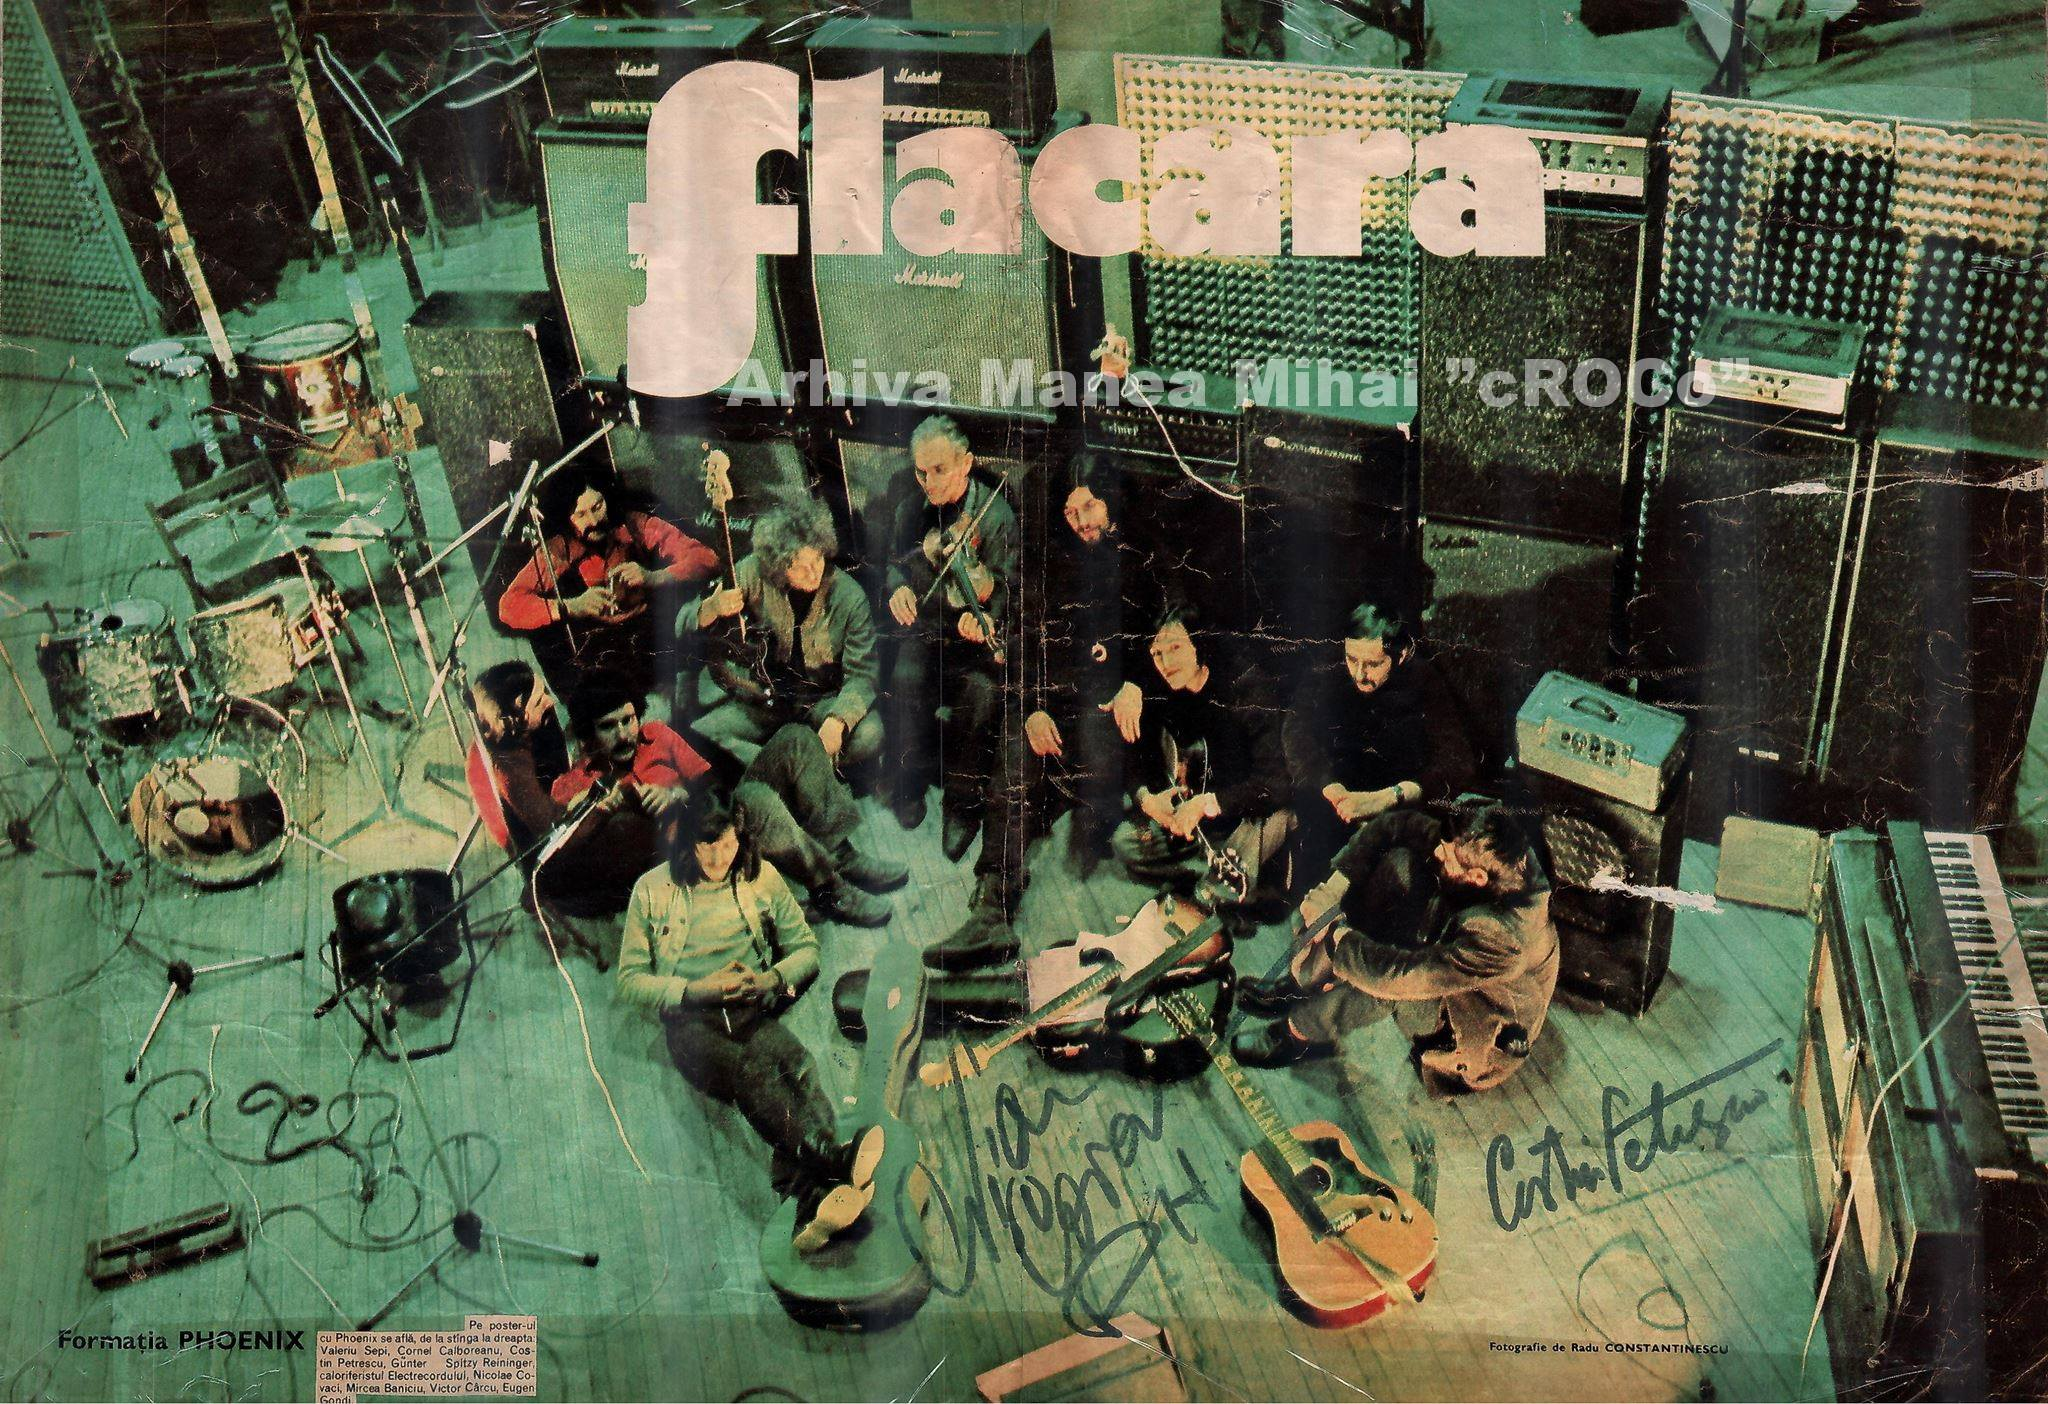 Poster with the Phoenix band in the Electrecord studio which included the autographs of its members